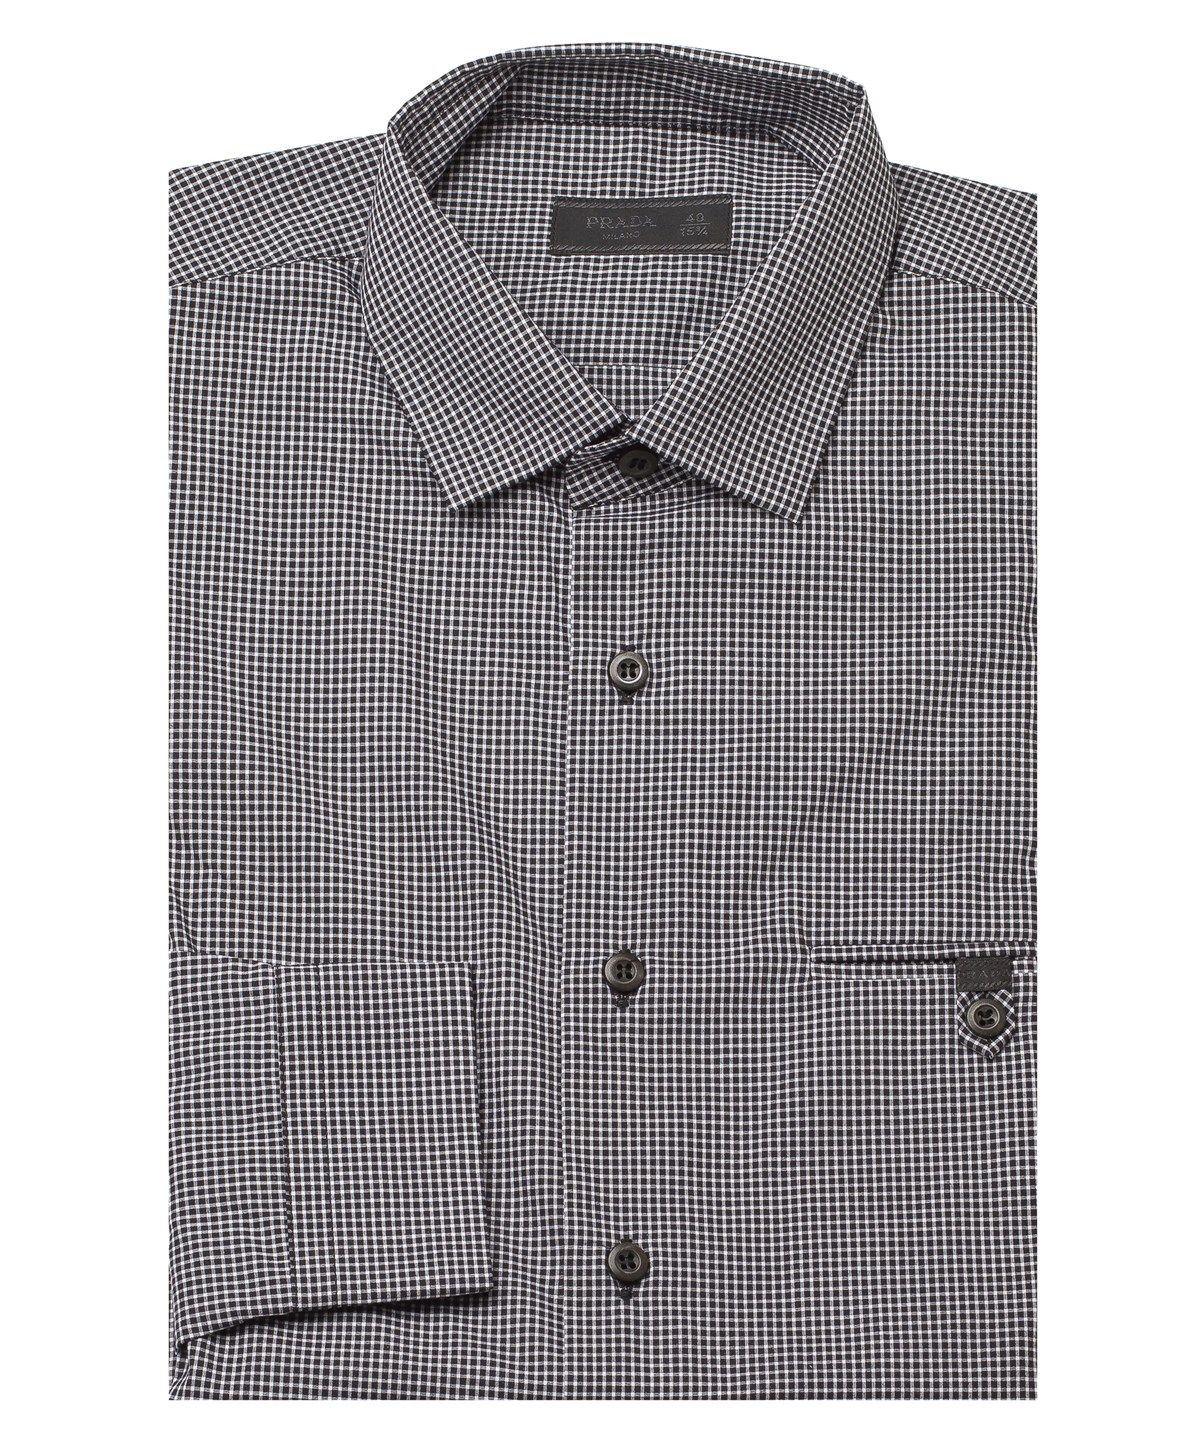 PRADA Prada Men'S Spread Collar Checkered Cotton Dress Shirt Black'. #prada #cloth #dress shirts